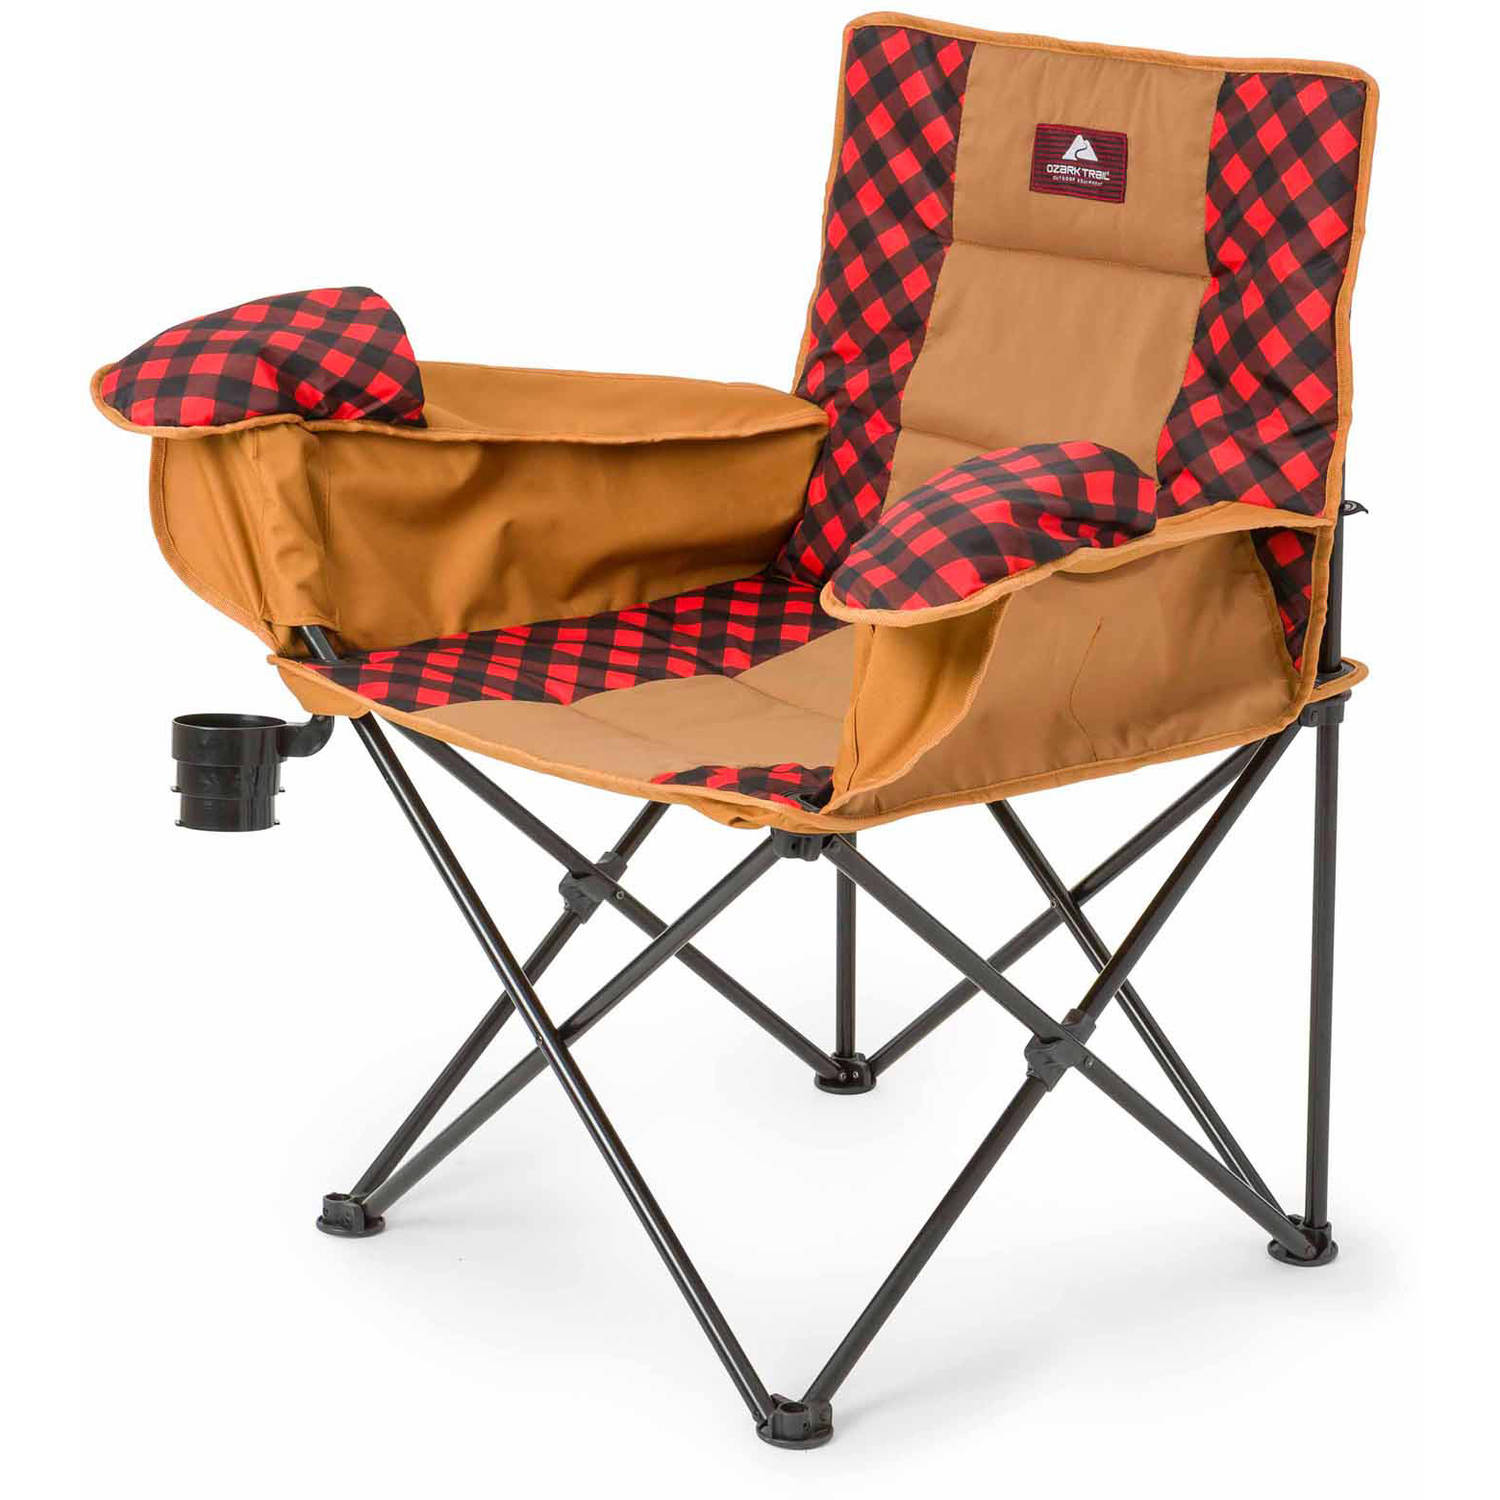 Ozark Trail Cold Weather Chair with Steel Frame, Black/Red/Warm Gray